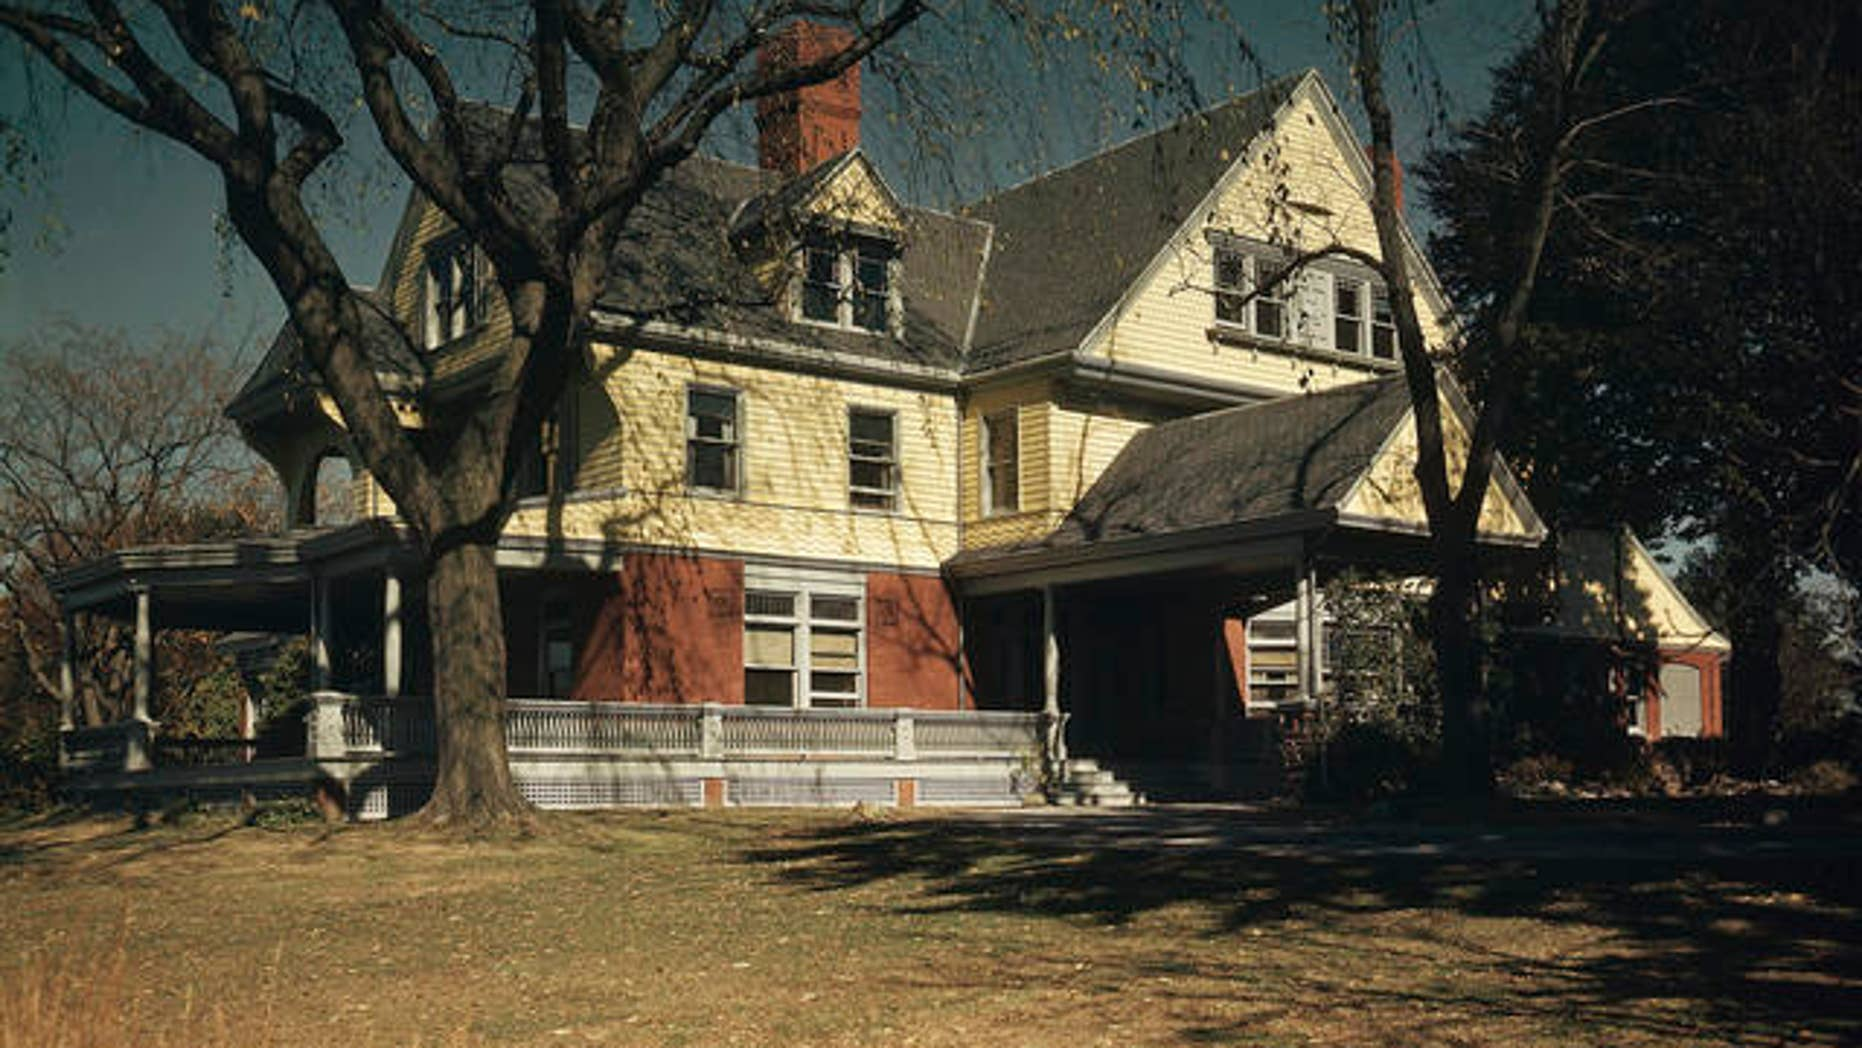 Sagamore Hill, home of Theodore Roosevelt, Oyster Bay, New York.